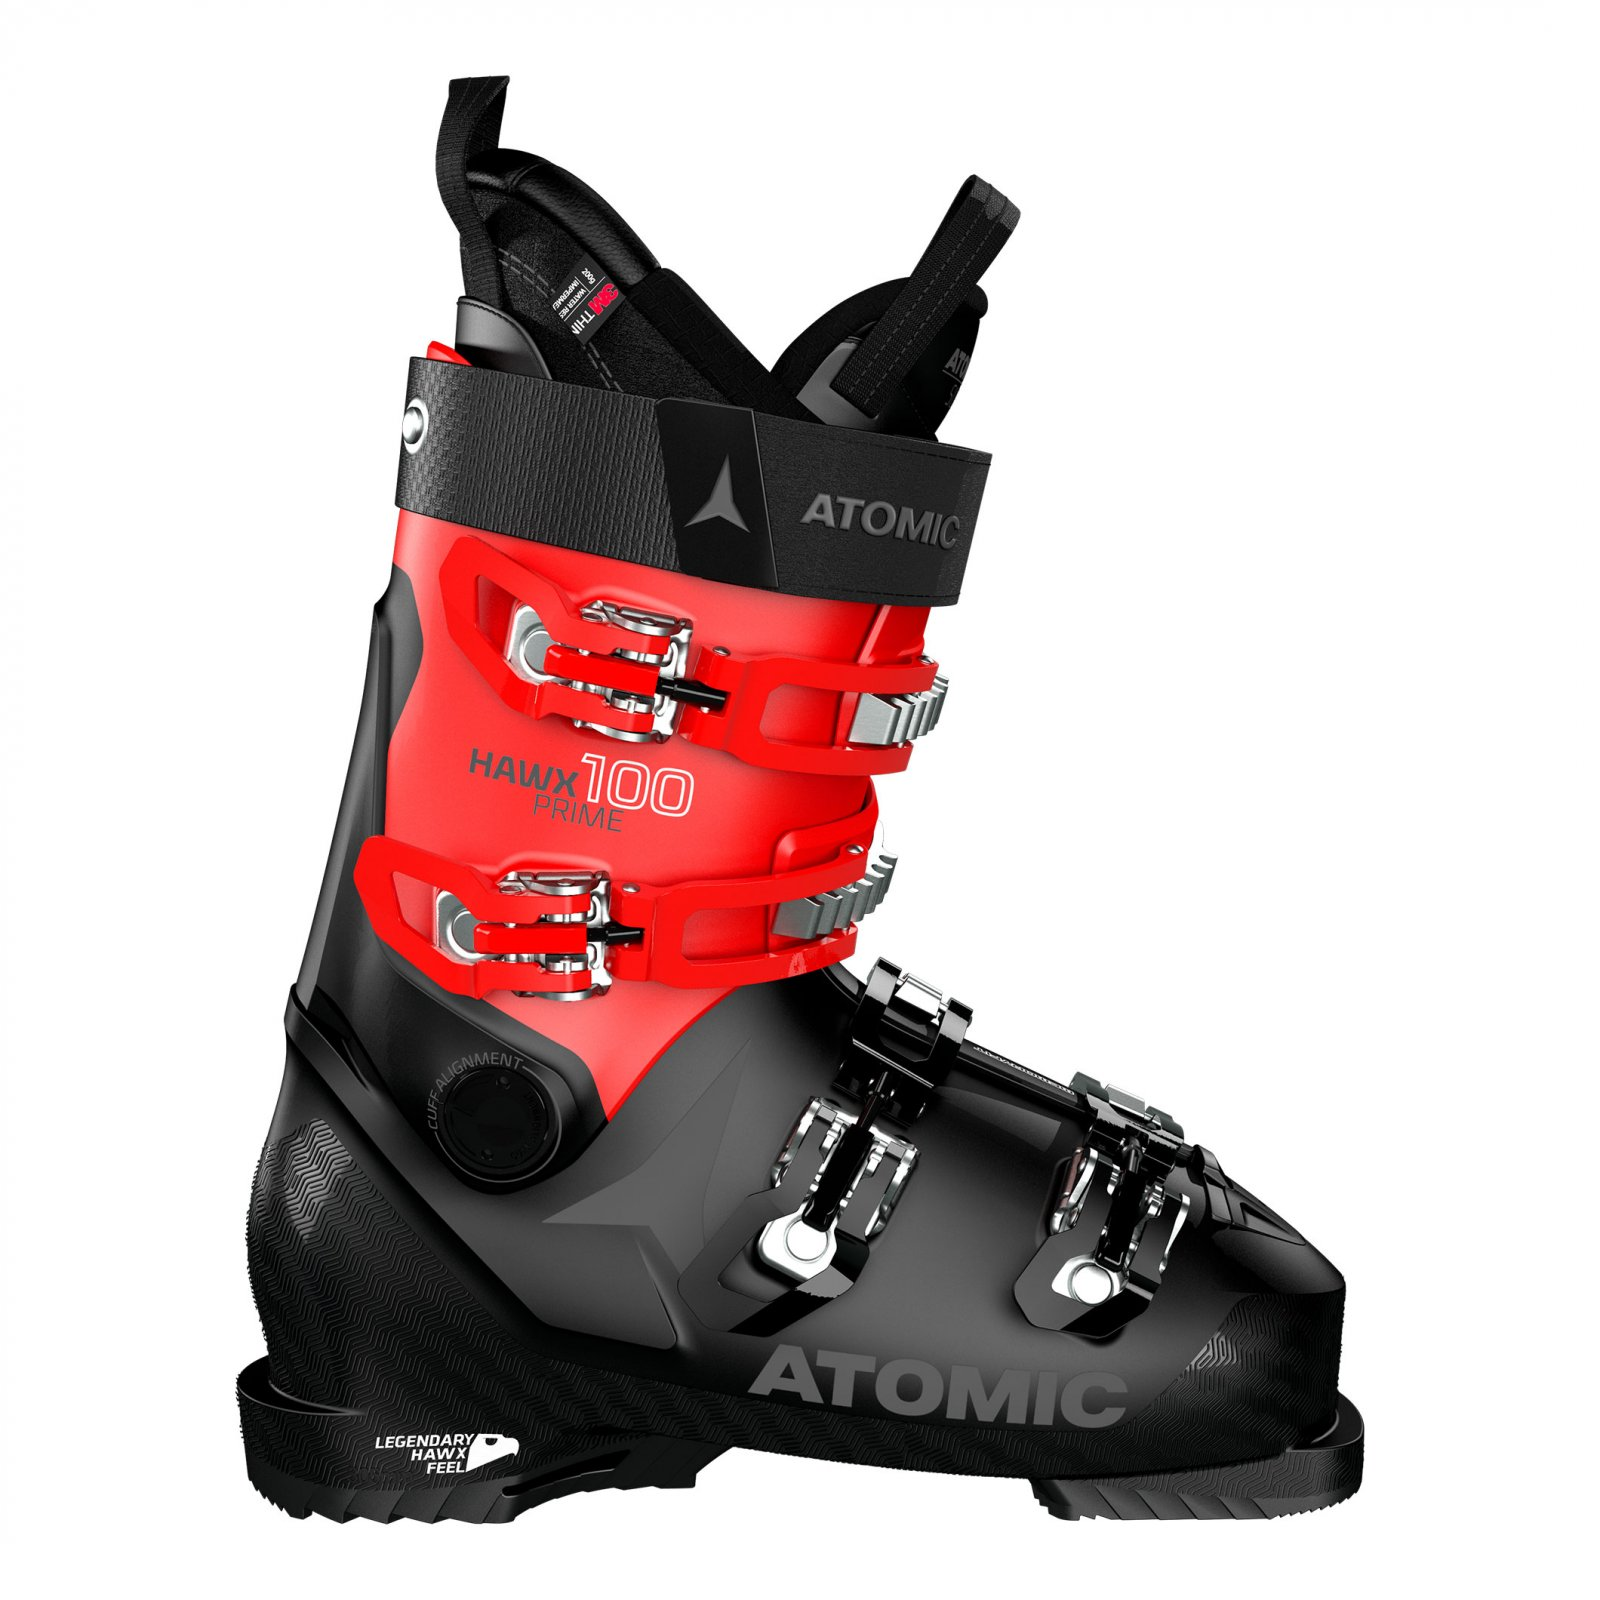 2021 Atomic Hawx Prime 100 Men's Ski Boots